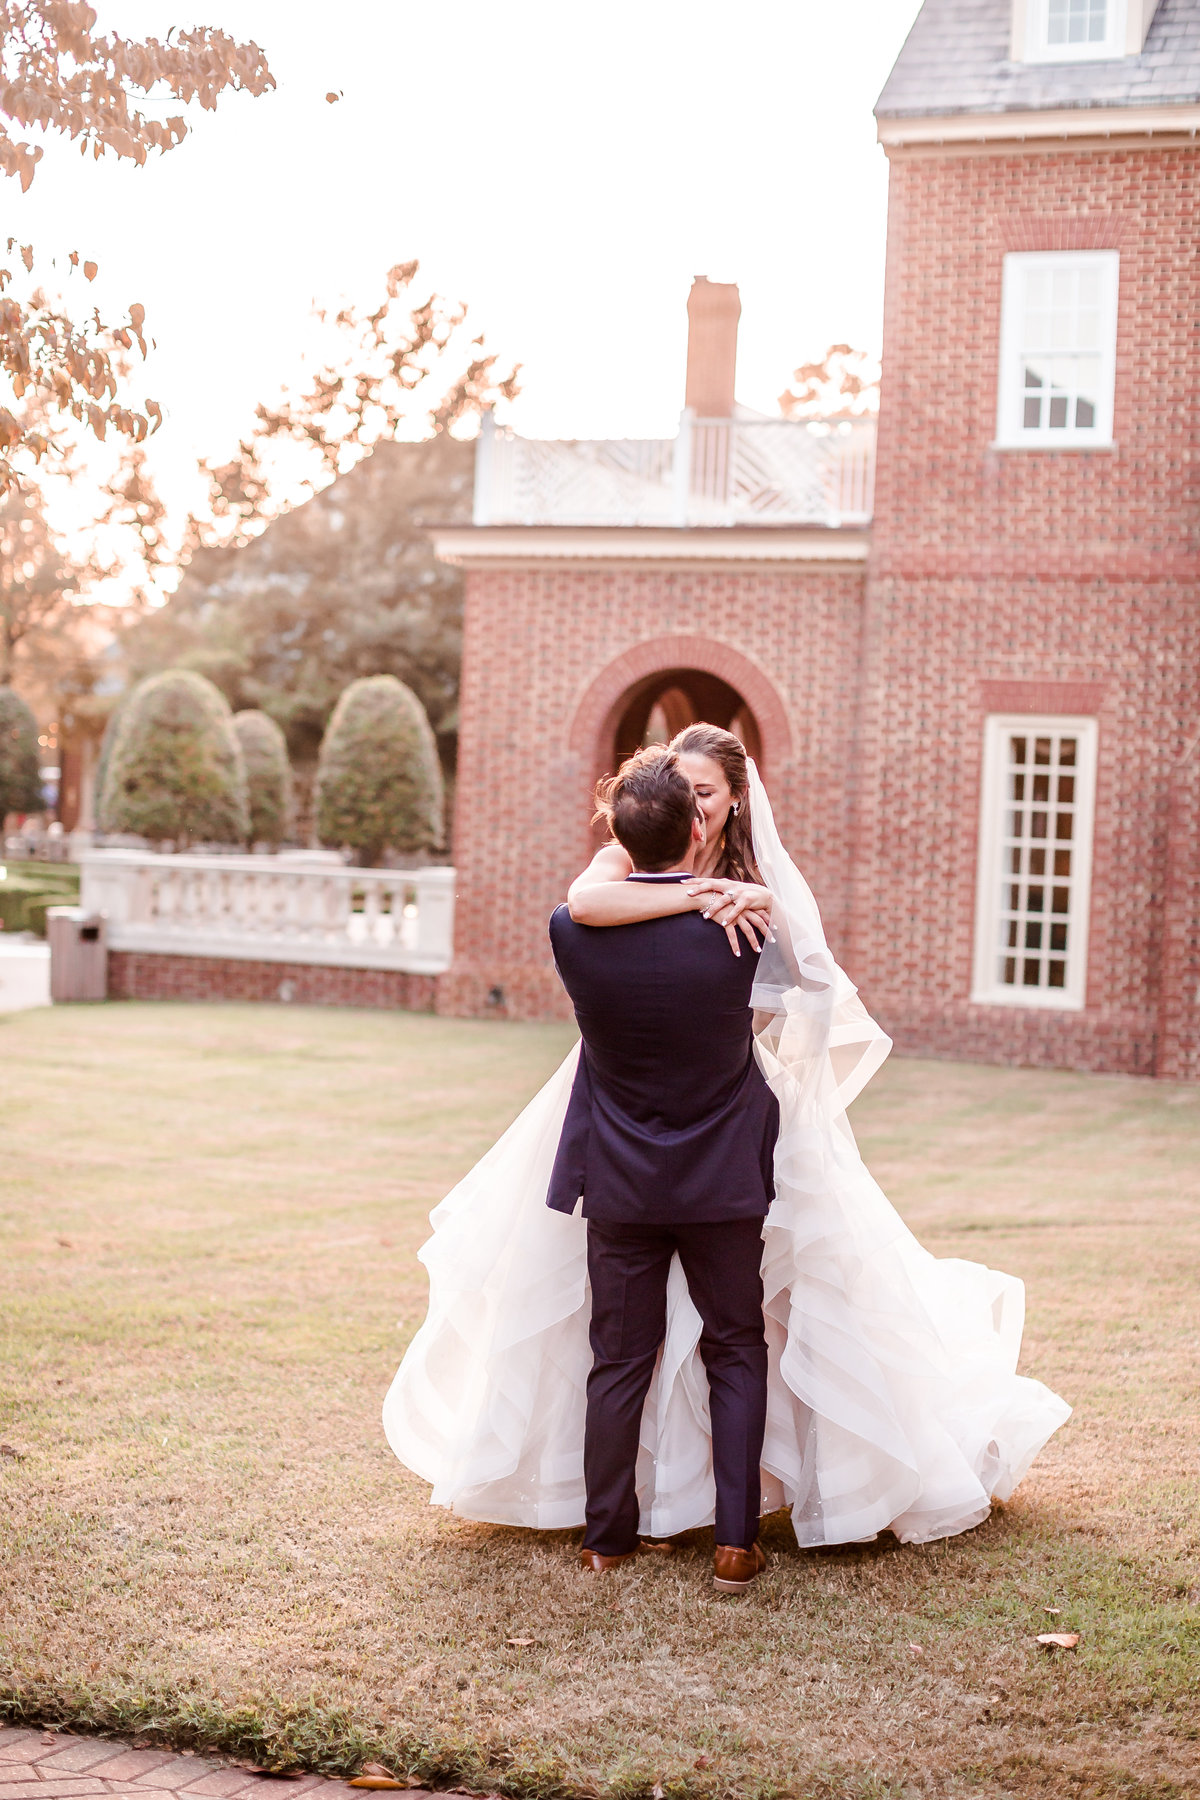 meghan lupyan hampton roads wedding photographer152